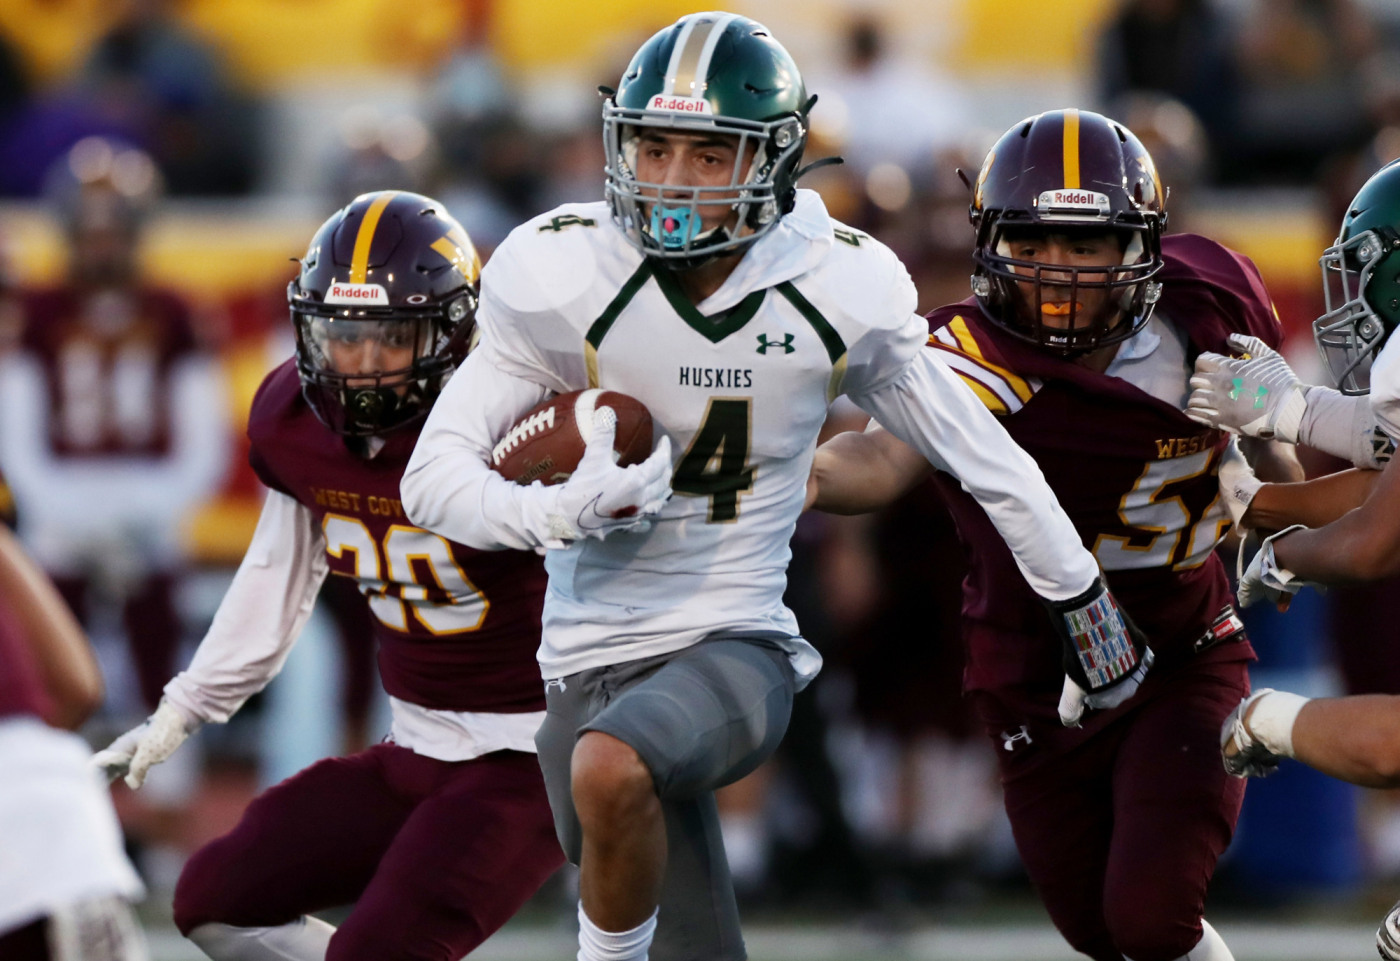 Scores & photos from Friday's high school football games, April 2 - L.A. Focus News